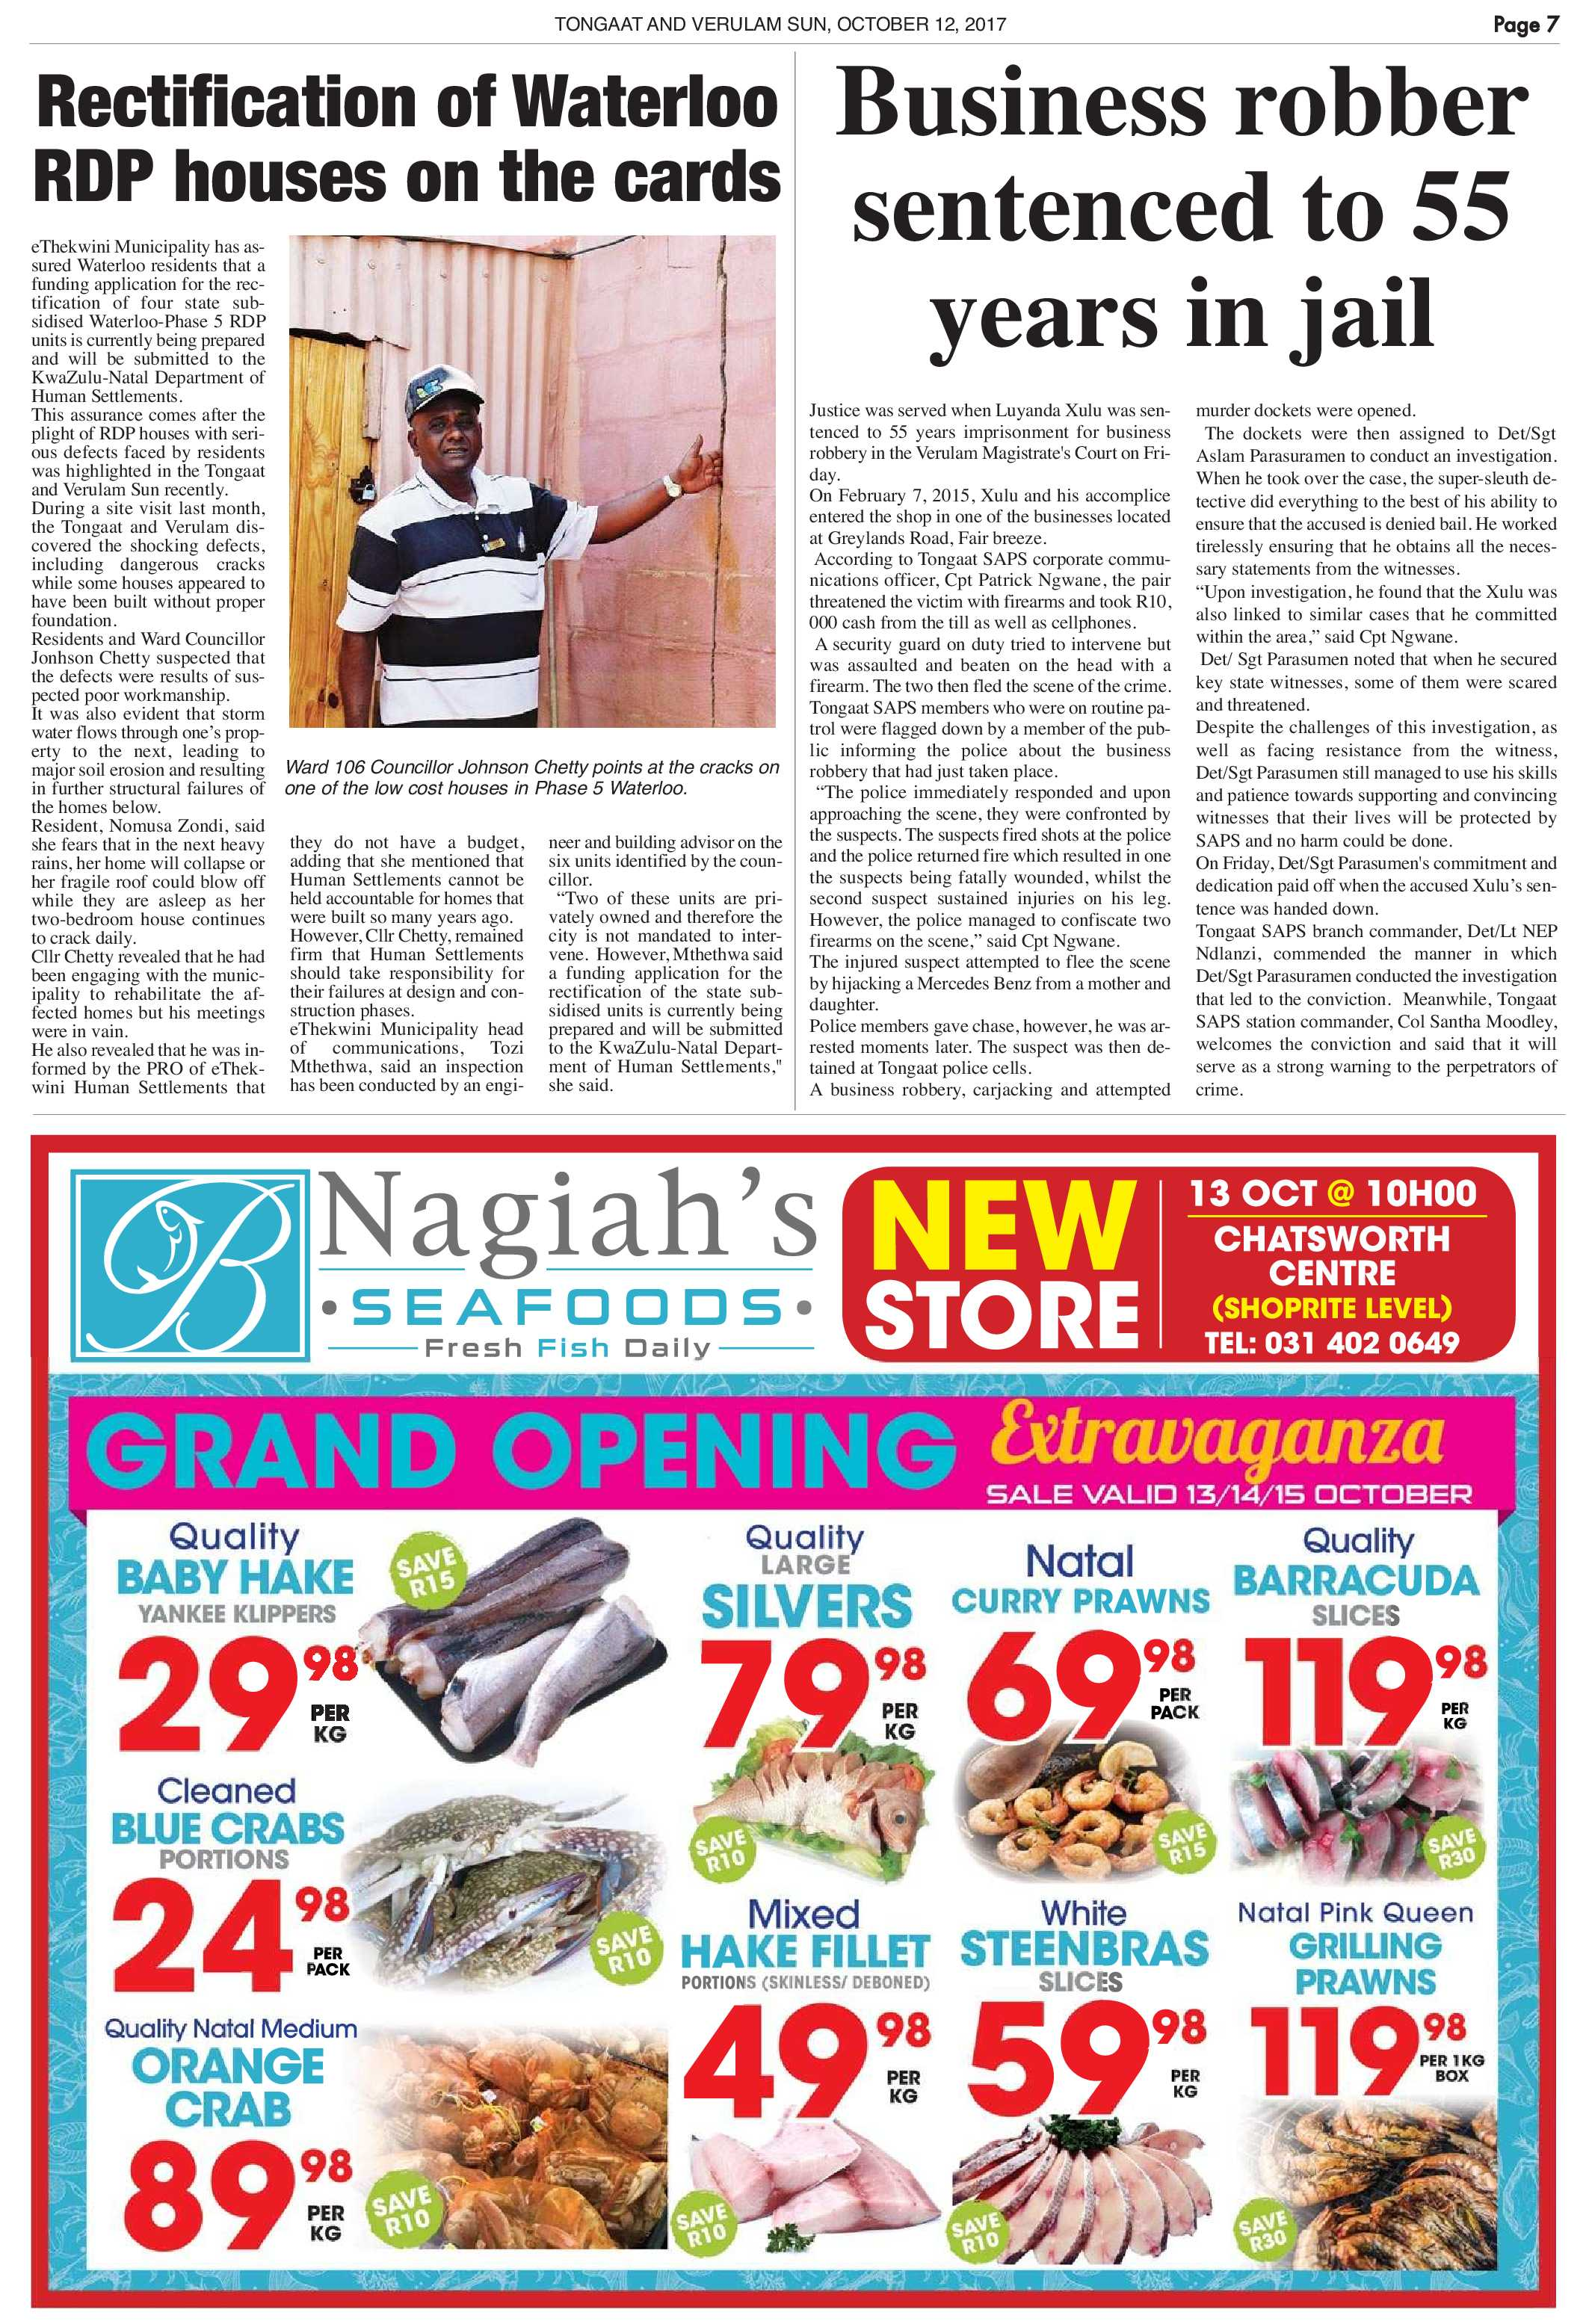 tongaat-verulam-sun-october-12-epapers-page-7